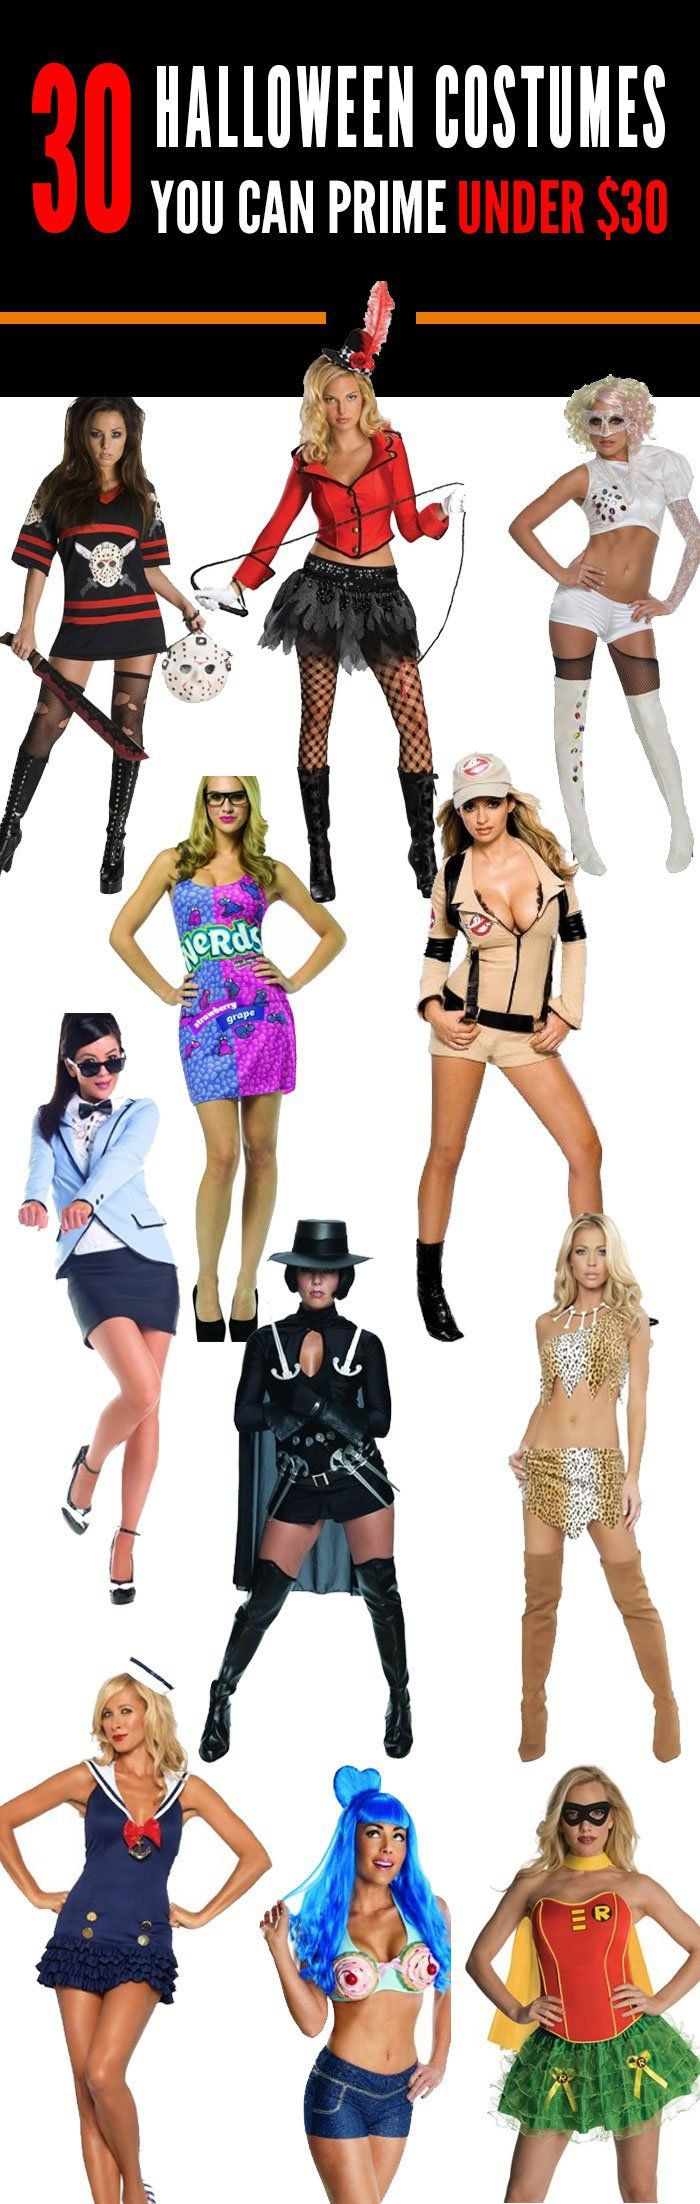 The 30 Best Halloween Costumes You Can Get on Amazon Prime Under $30